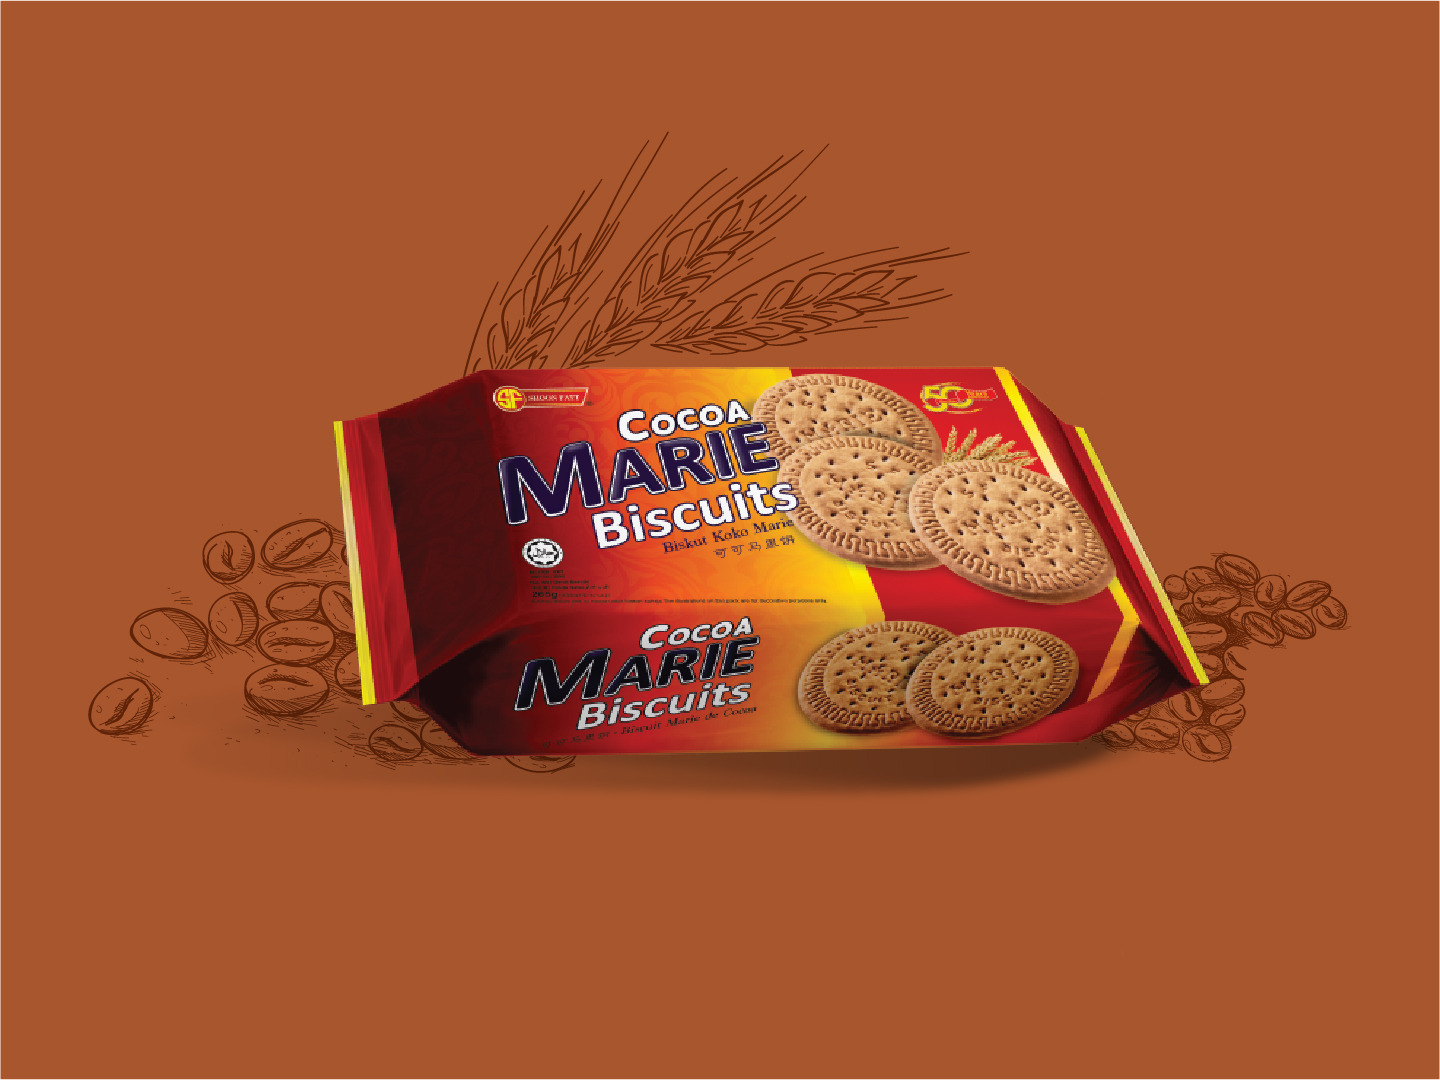 Shoon Fatt Cocoa Marie Biscuits